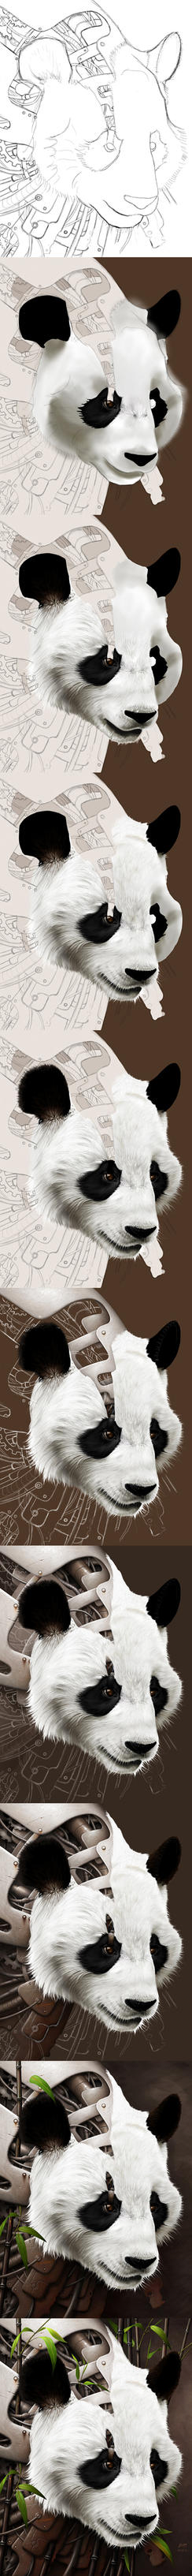 Wild 2 - The Panda - Steps by BenF